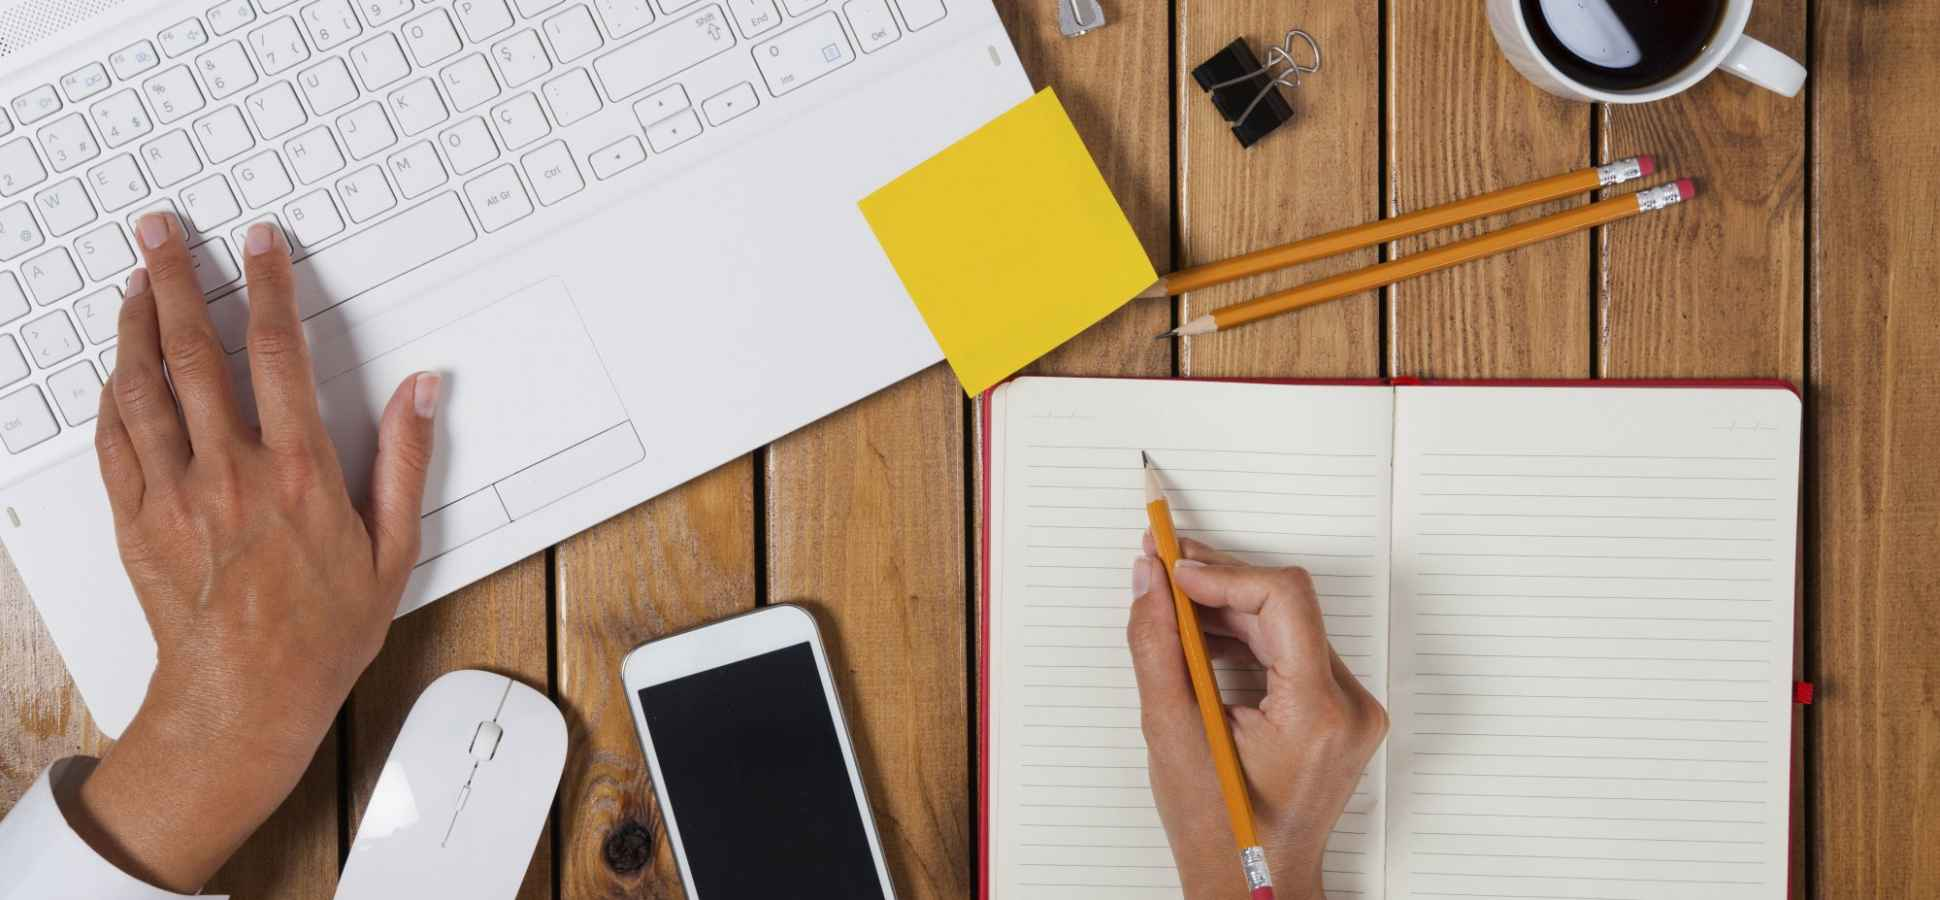 9 Ways Blogging Can Feed Your Soul While Helping Your Business